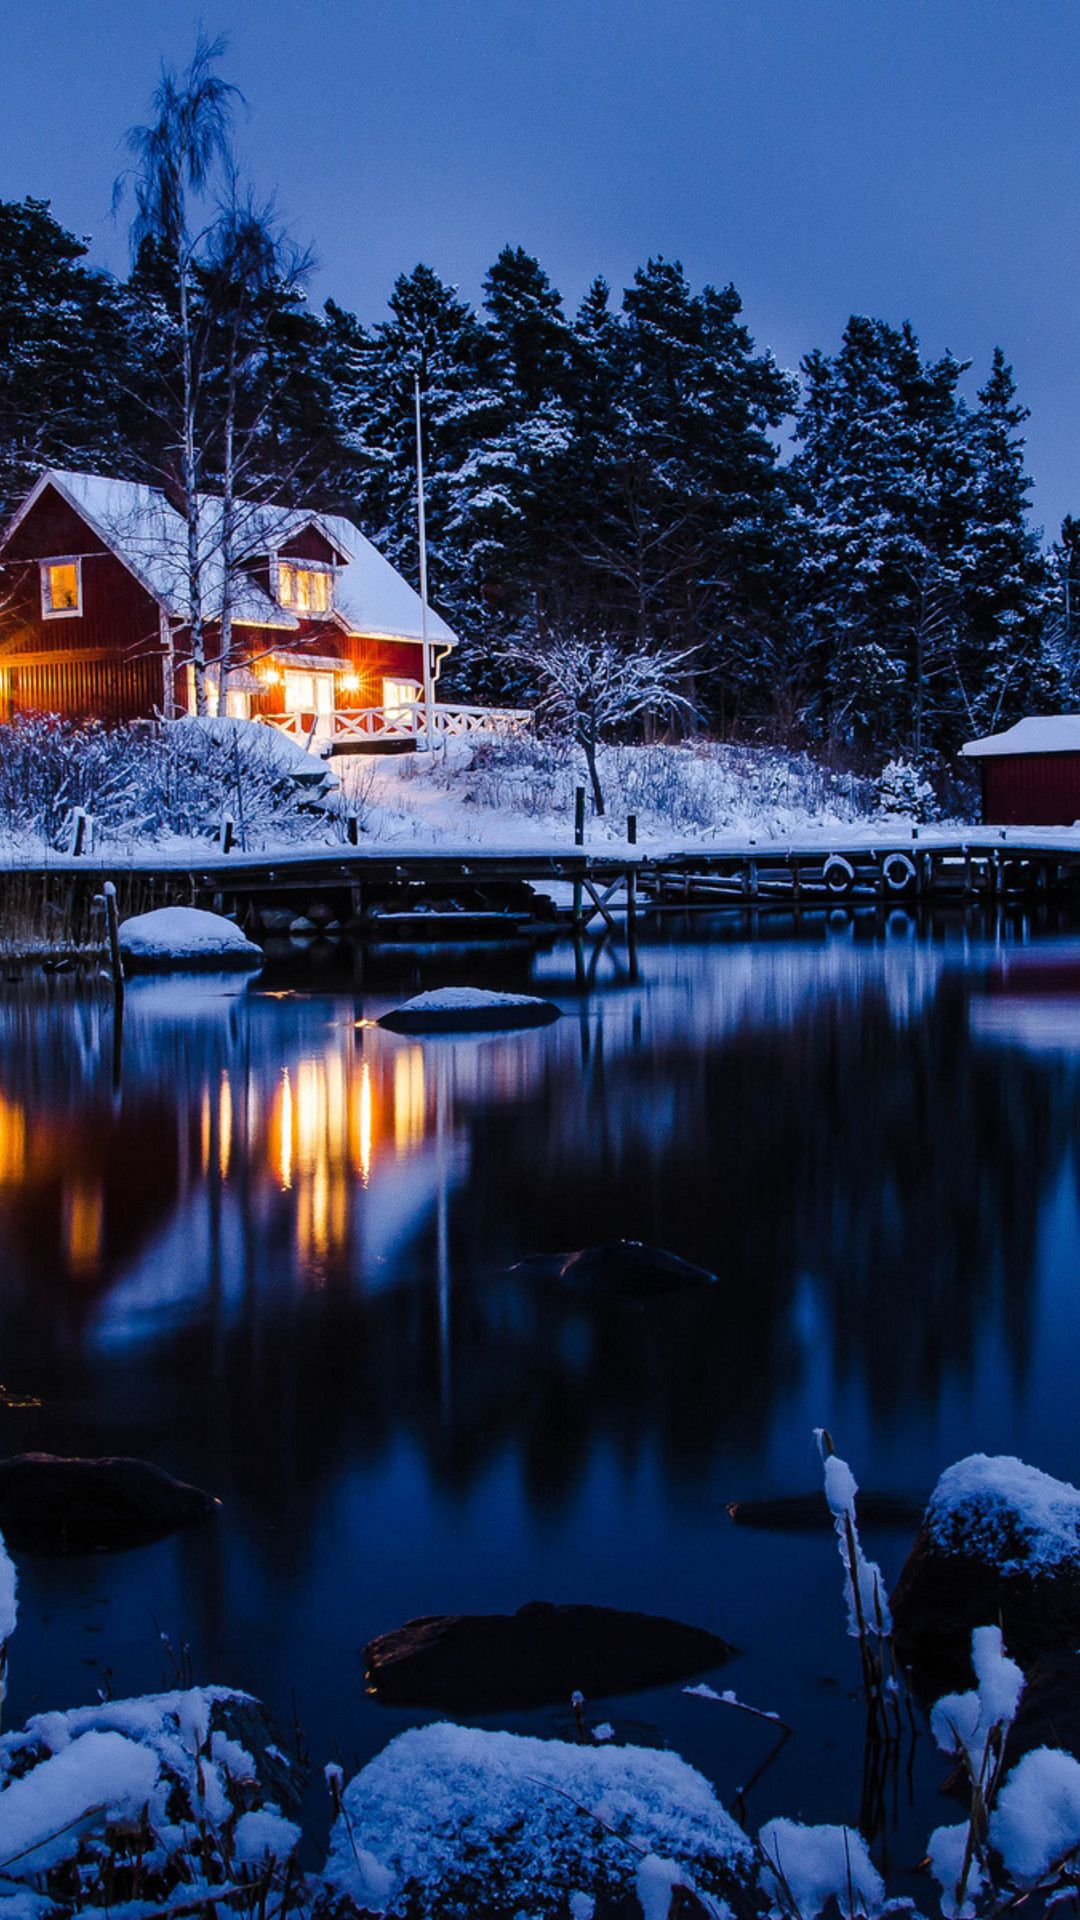 wallpaper download 1080x1920 winter holiday night at the